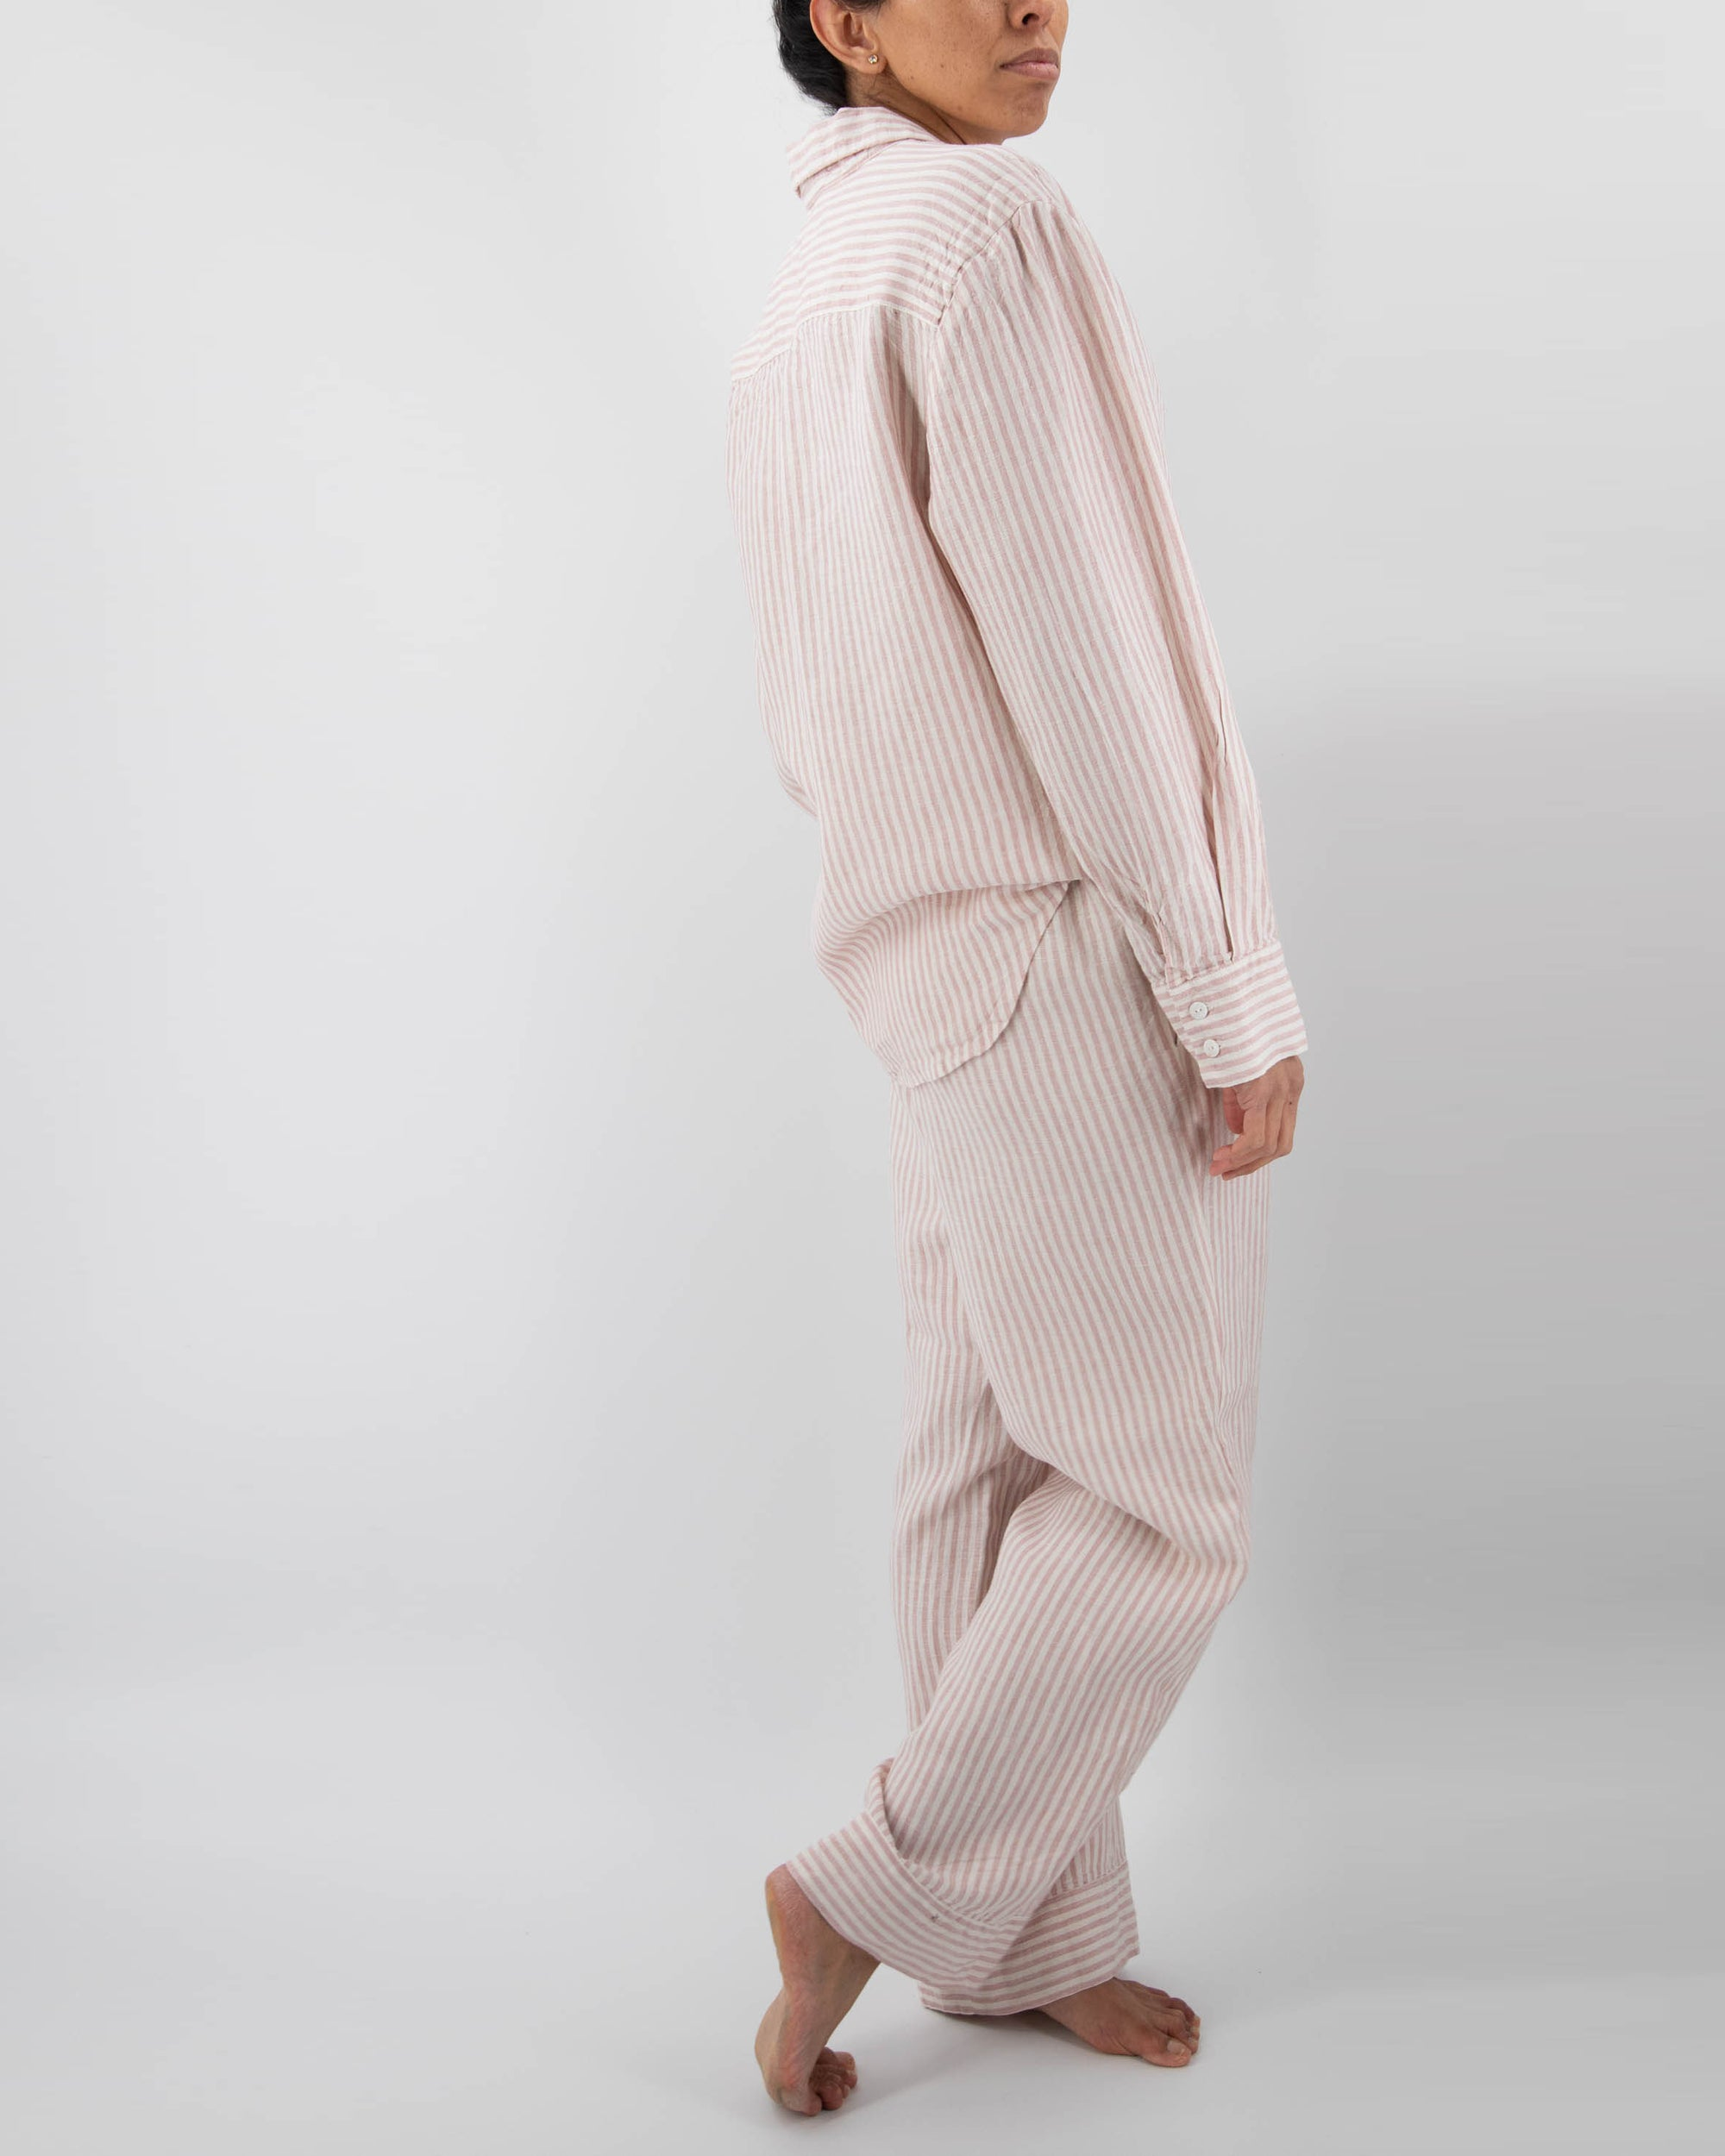 Model in pink linen striped pajamas (long sleeved shirt and long pants)